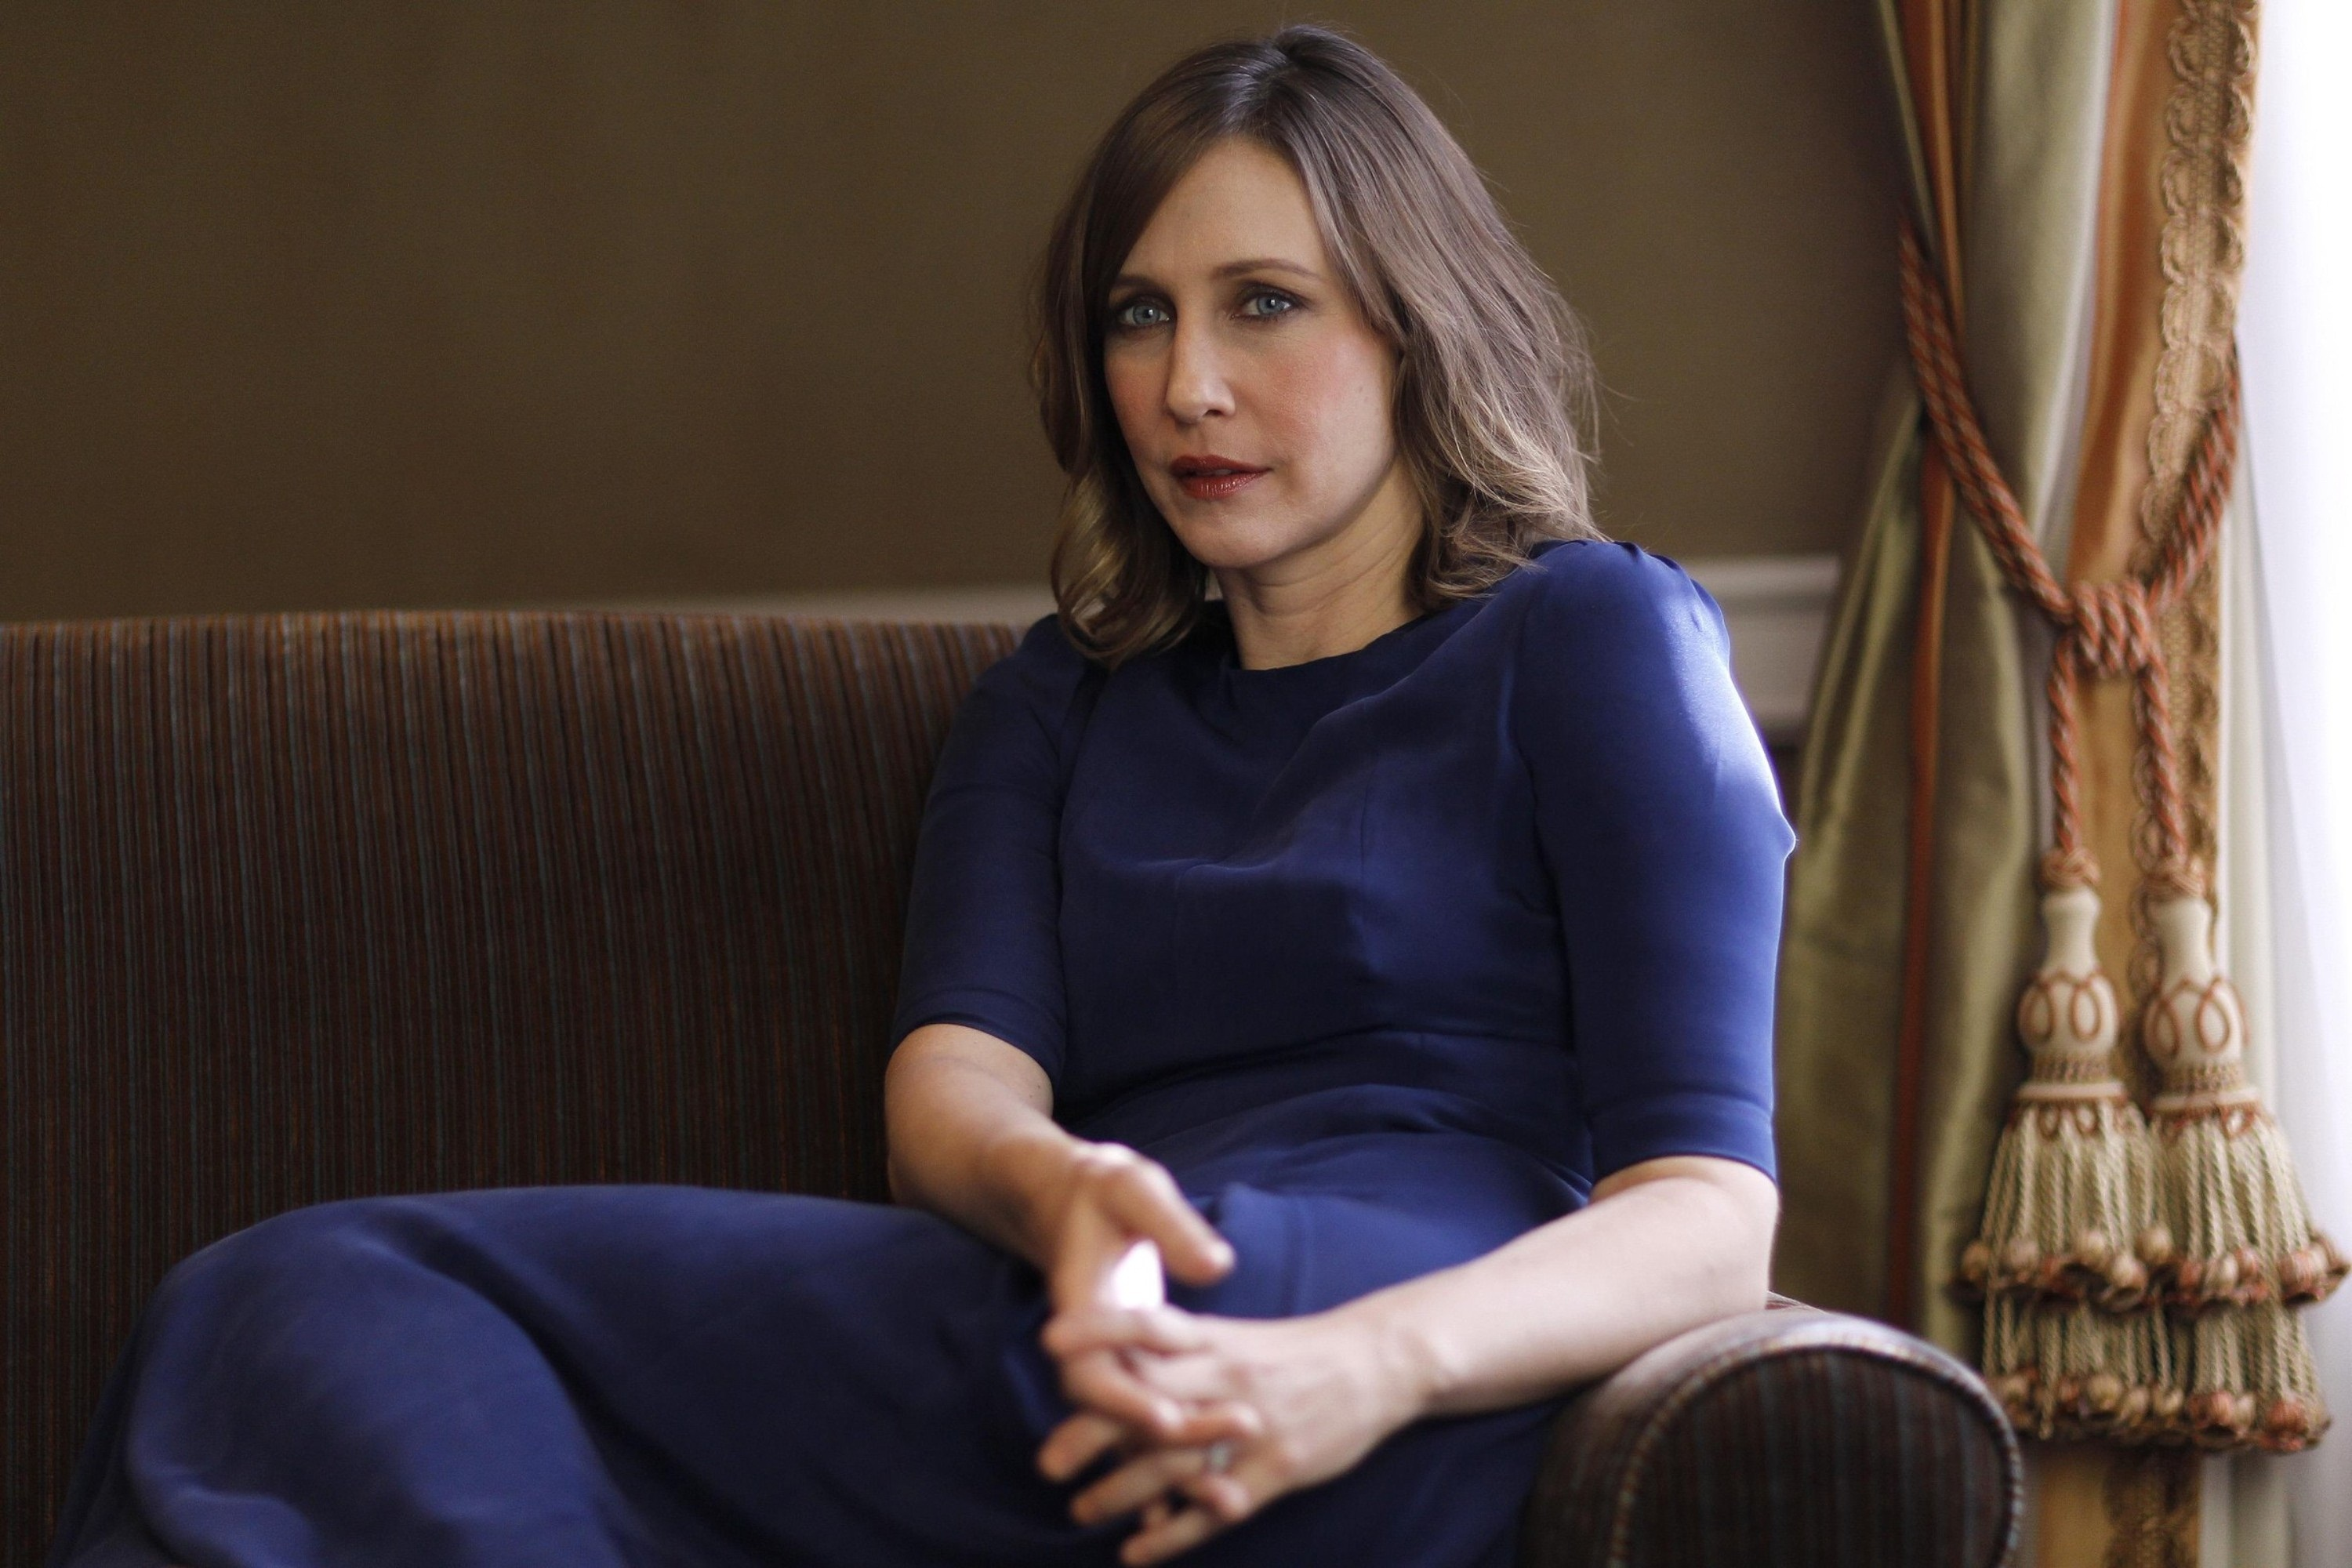 Vera Farmiga Wallpapers High Resolution and Quality Download 3000x2000